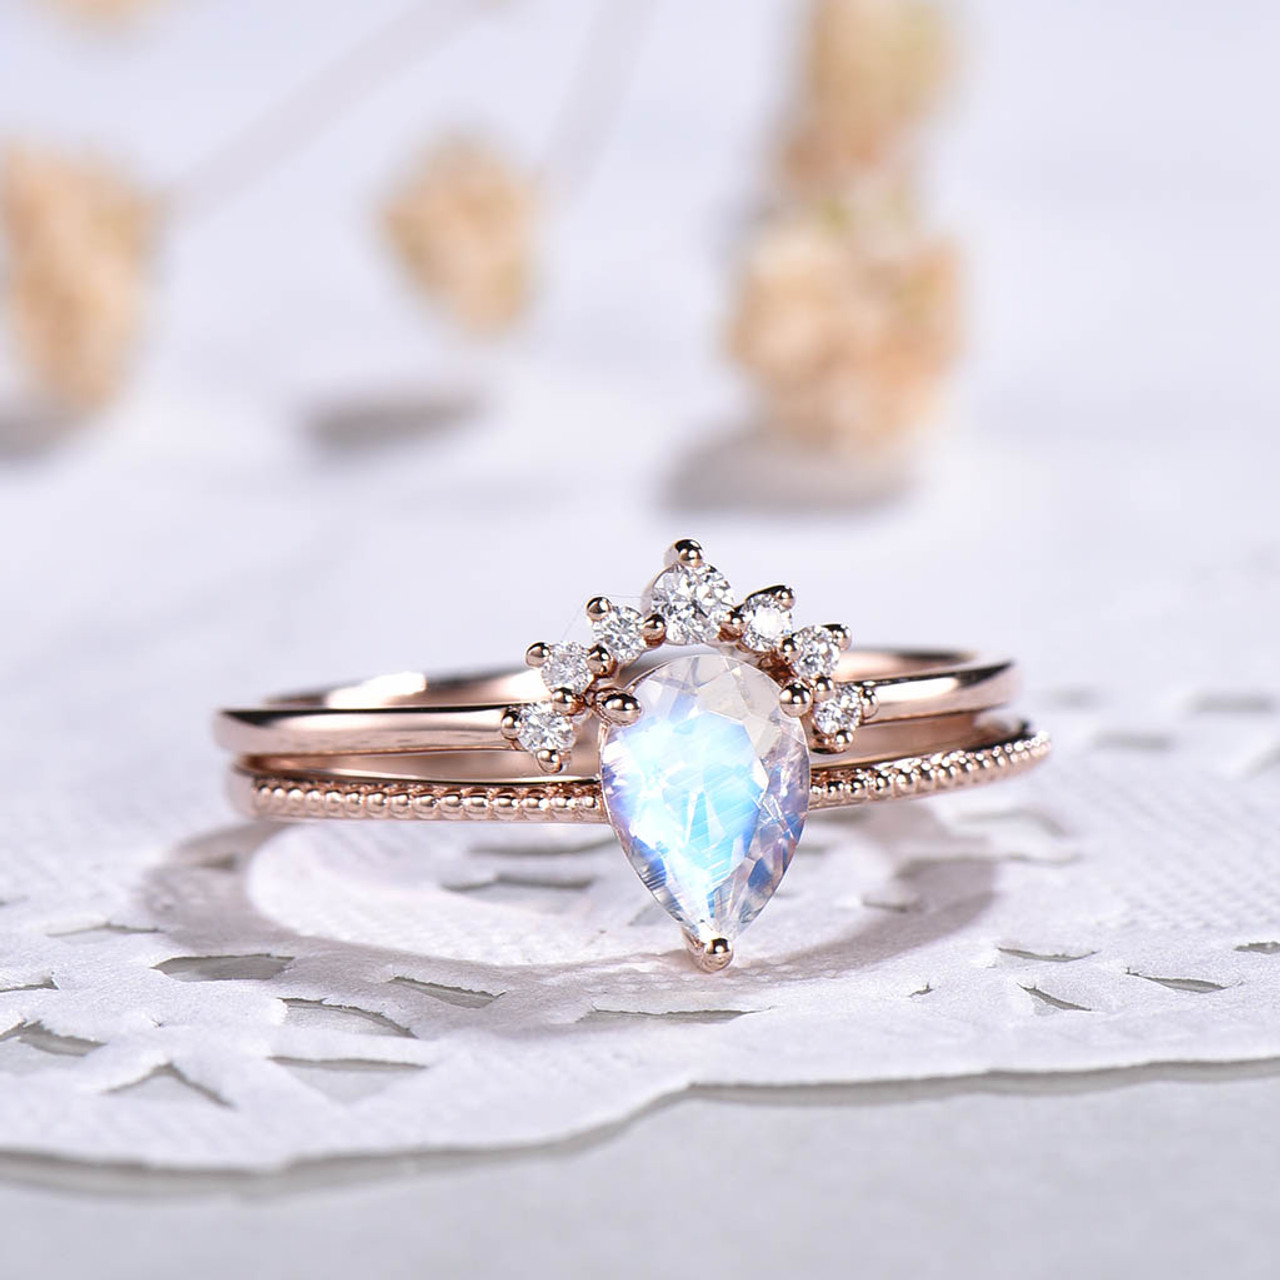 Pear Rainbow Moonstone Ring-Bridal Set-Wedding Ring-Two in One Ring-Gift for Her-Wedding Band